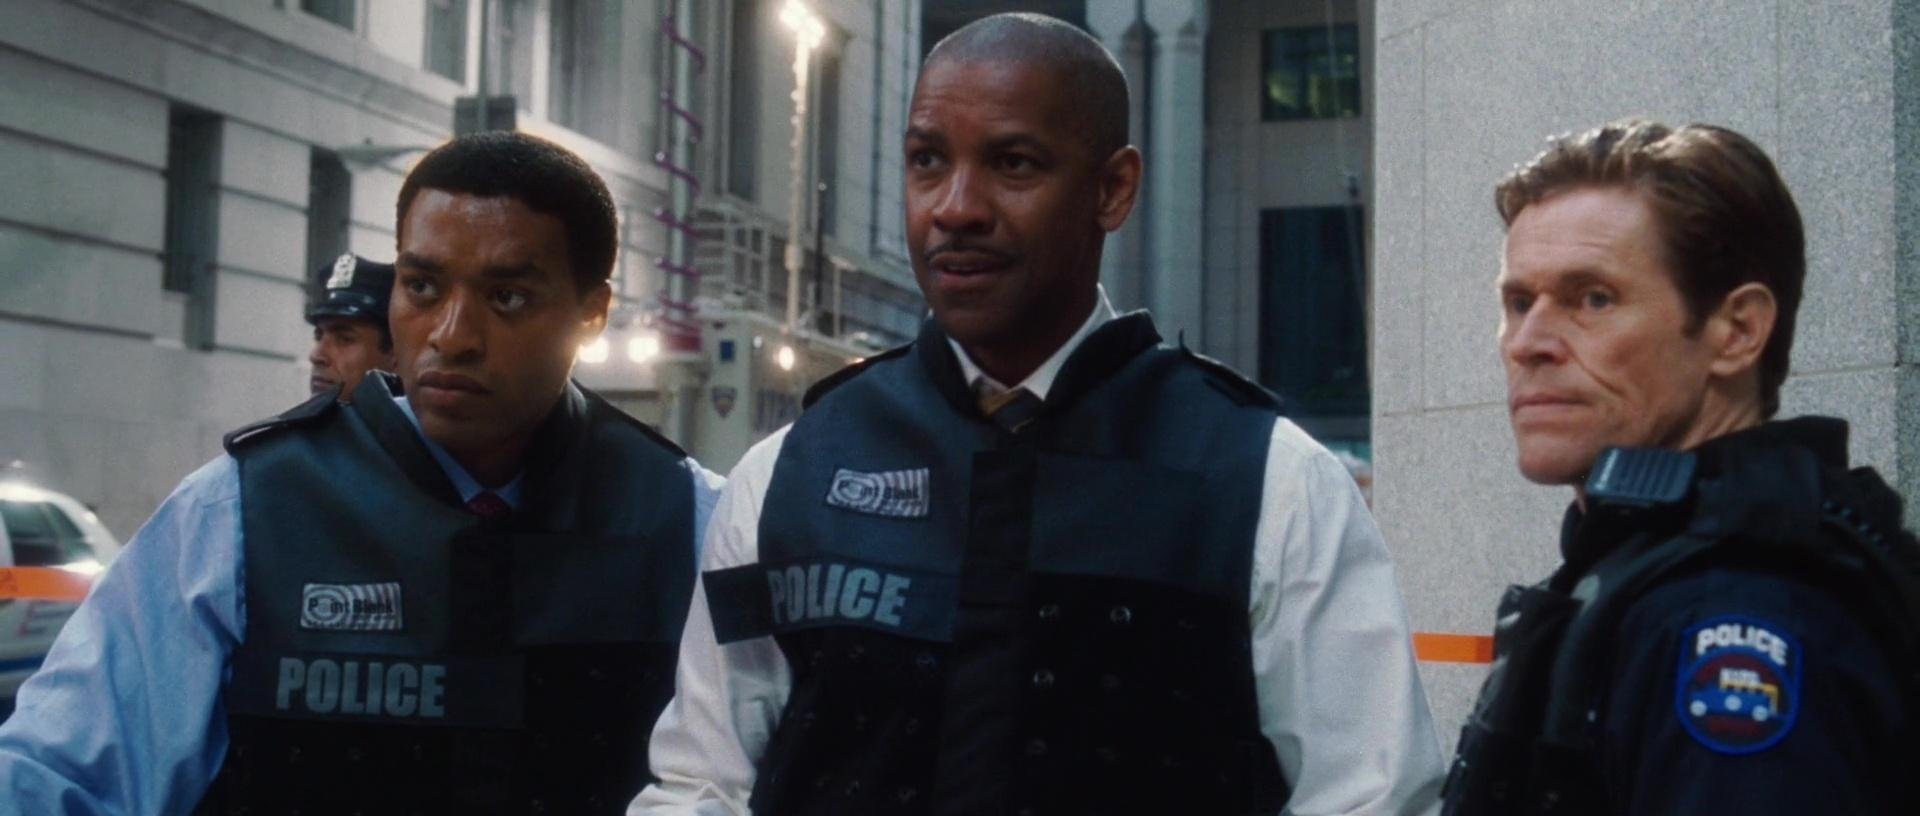 Inside Man. Left to right - Chiwetel Ejiofor, Denzel Washington and Willem Dafoe, all in police uniform.